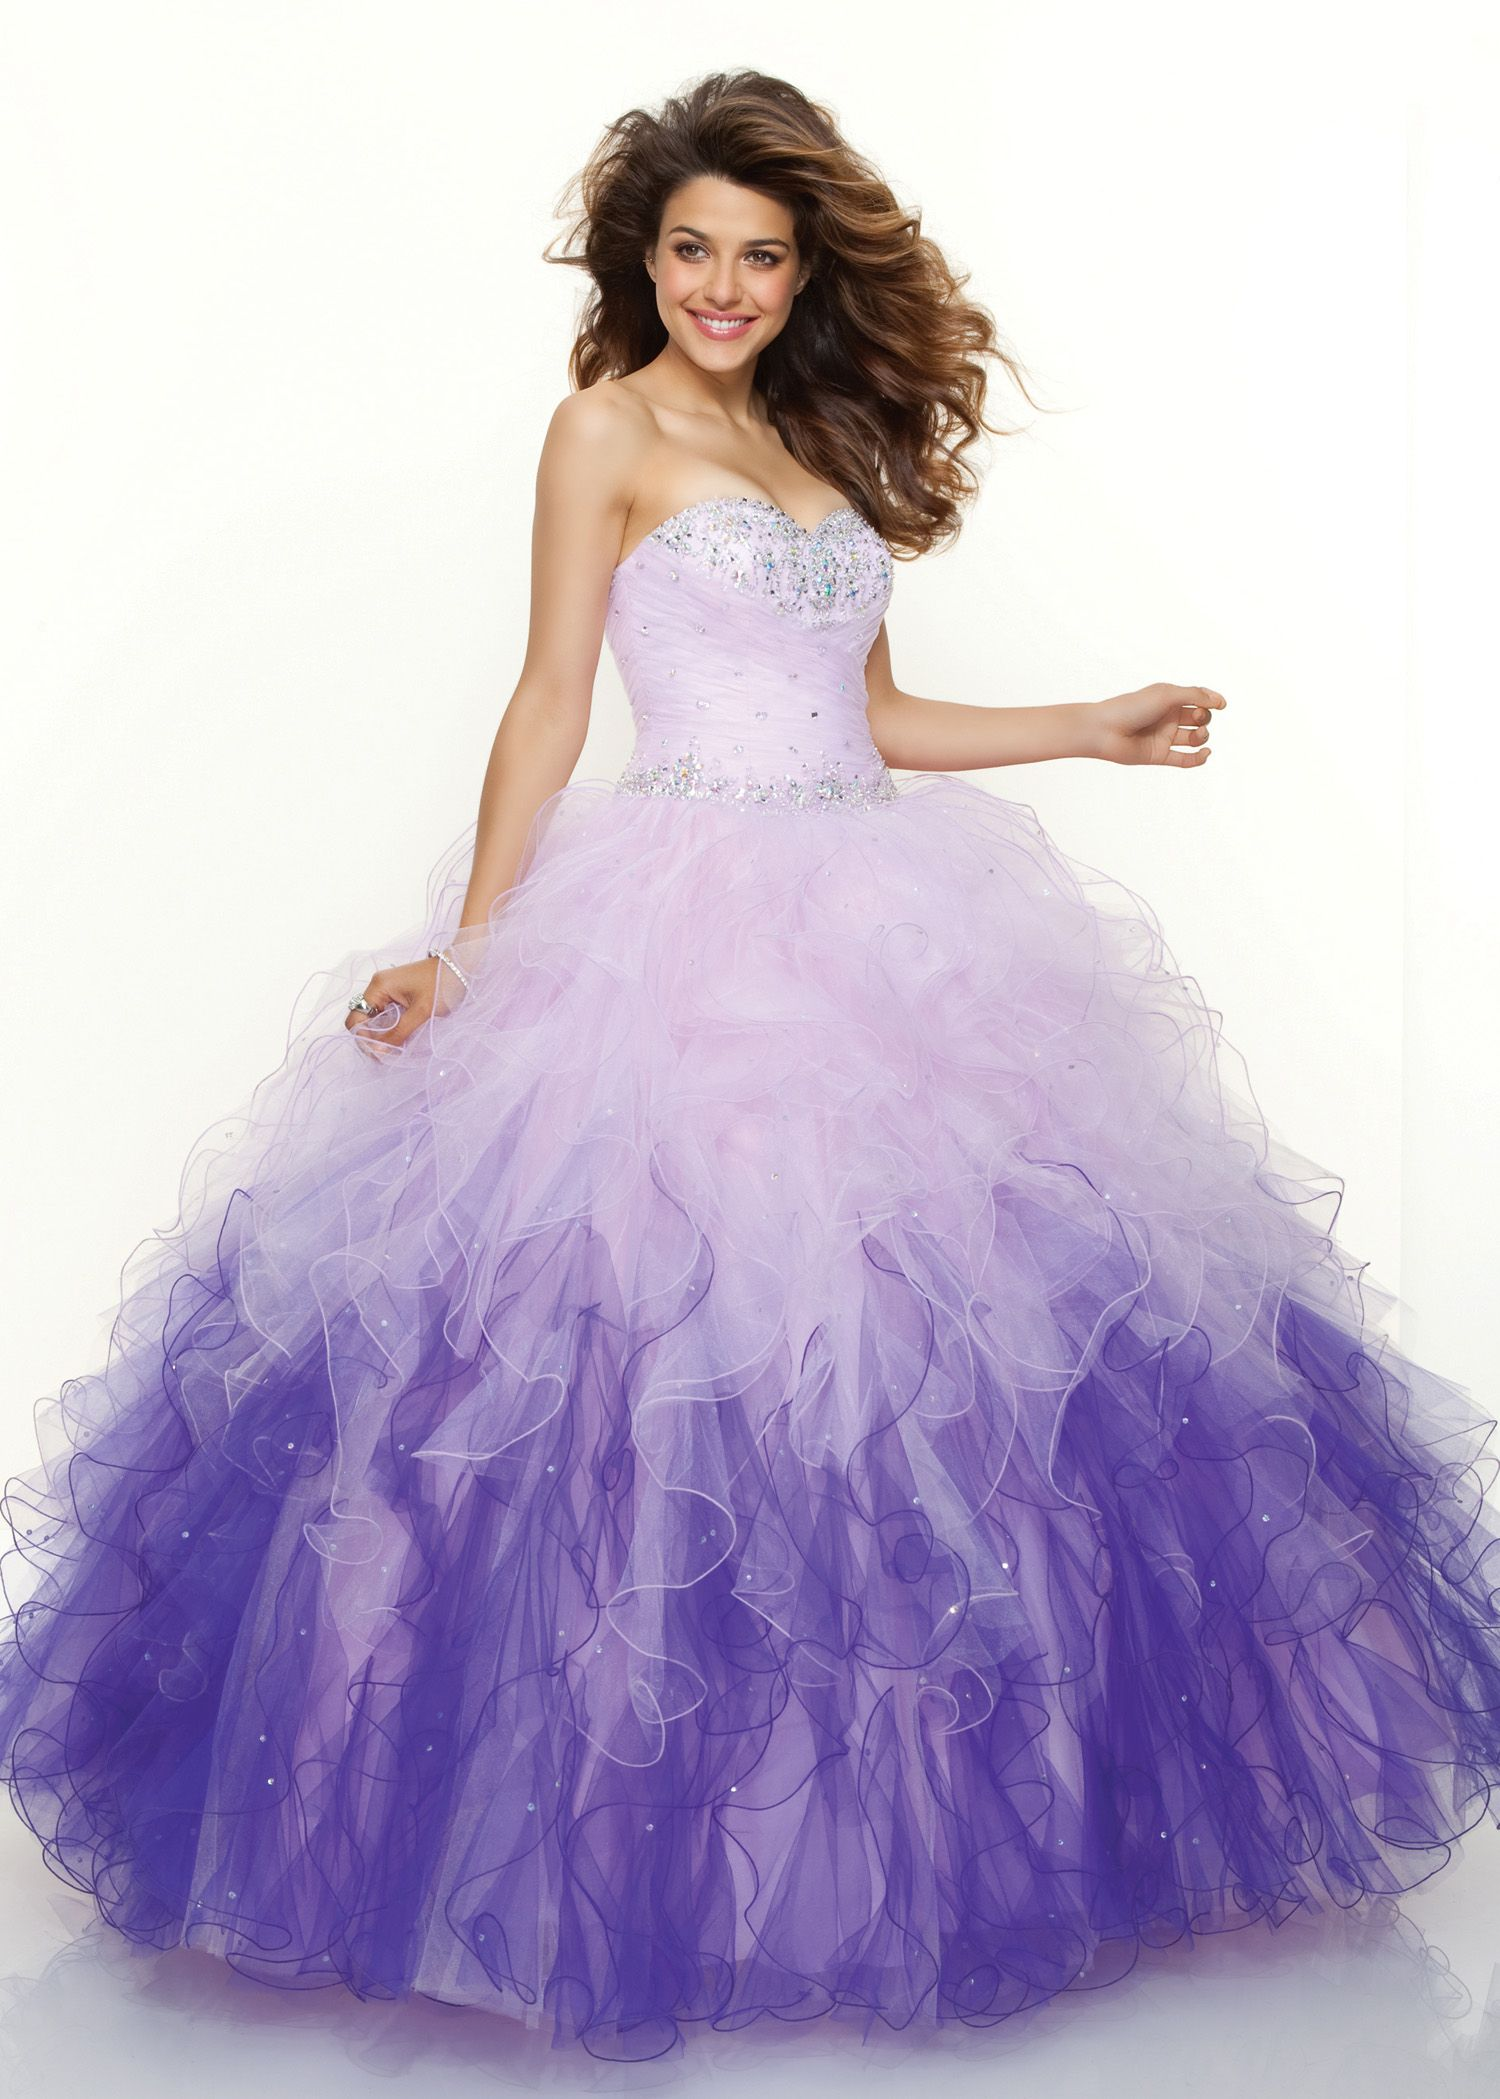 Find Paparazzi by Mori Lee 91001 fairydust purple ball gown prom ...